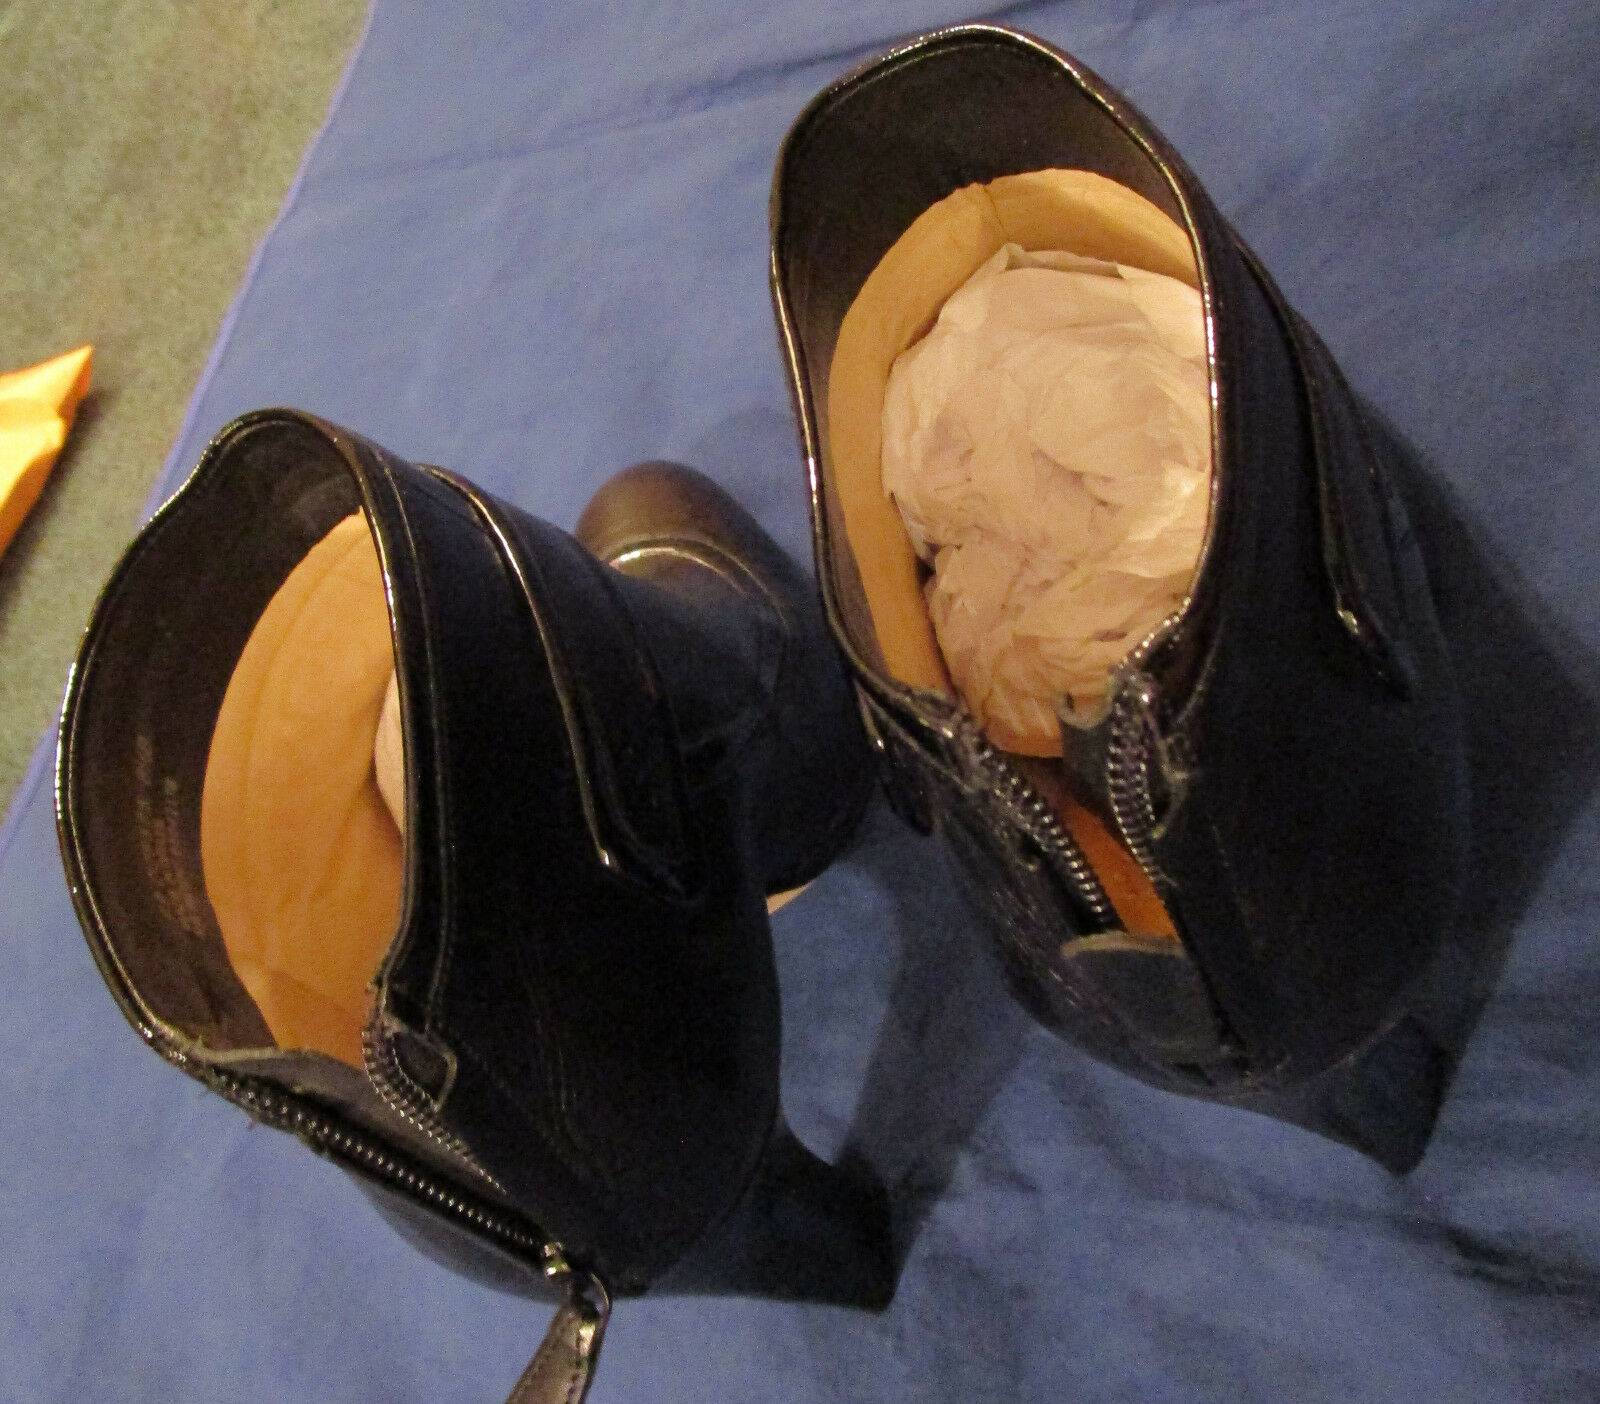 COLE HAAN WOMAN'S BOOTIES BOOTIES BOOTIES TO THE ANKLE---EXCELLENT CONDITION---SIZE 8.5--- BLACK a8c603